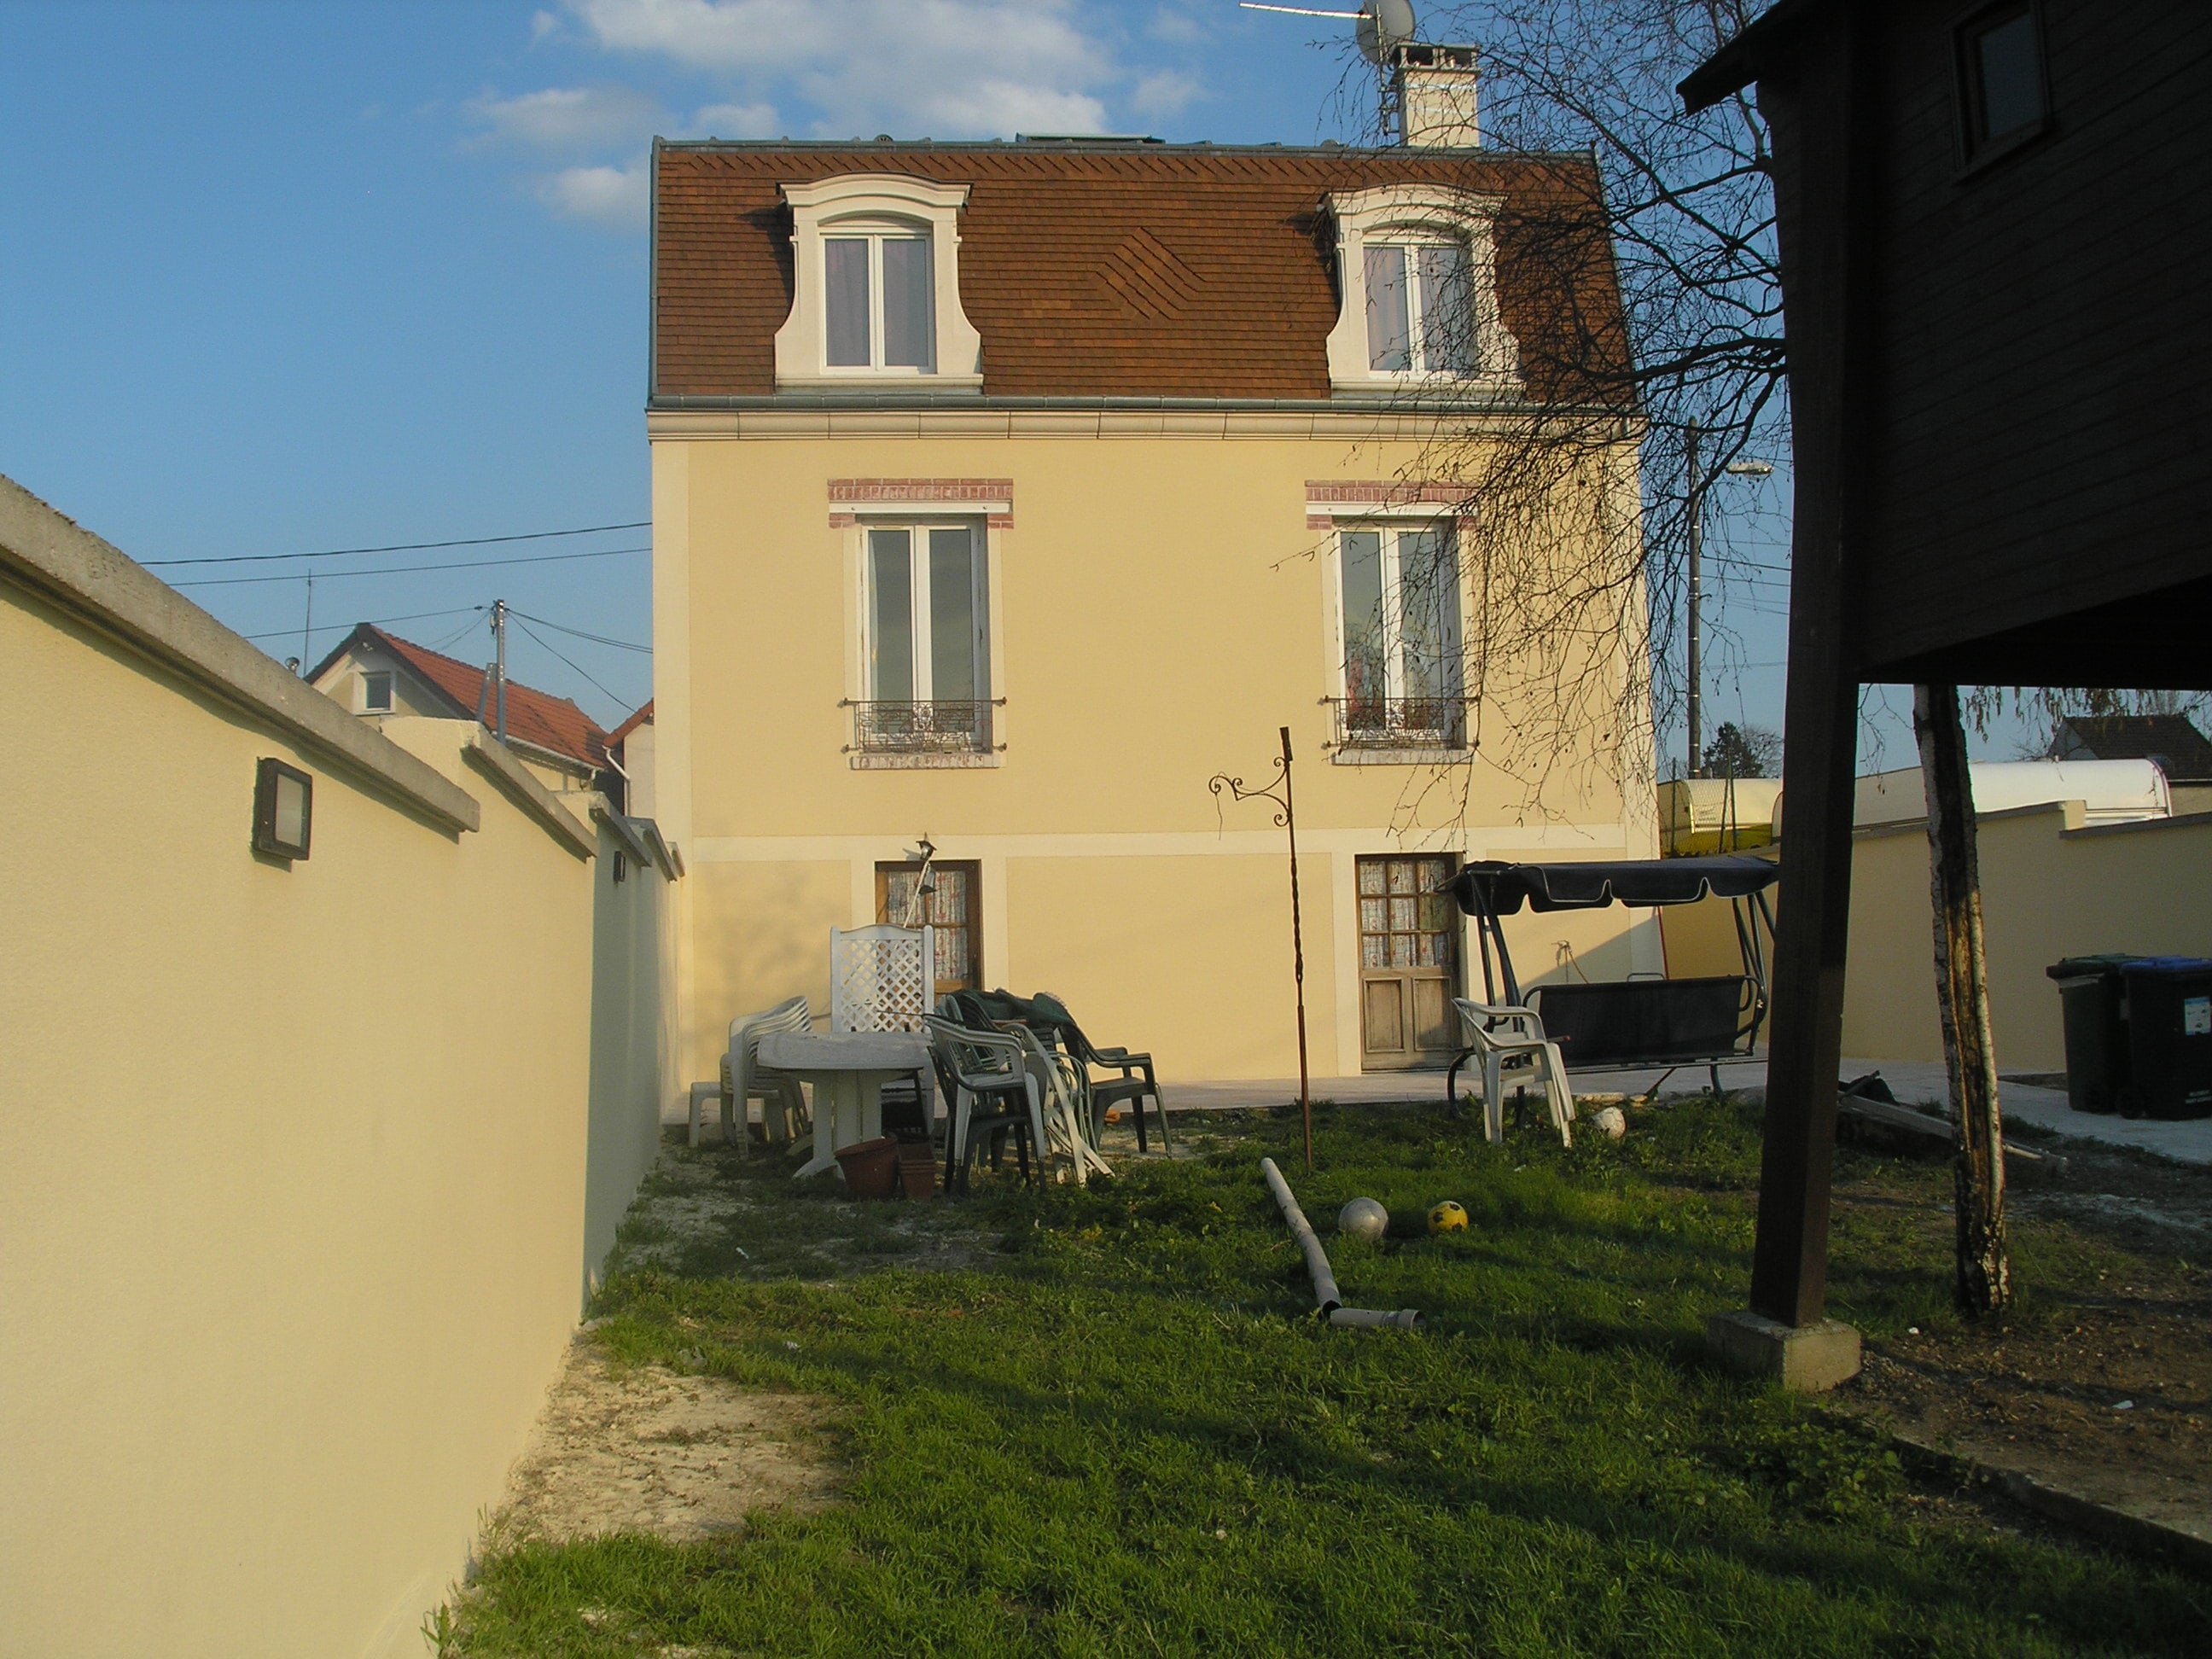 travaux-pavillon-24-agrandissement-rehaussement-couverture-renovation-texas-batiment-min